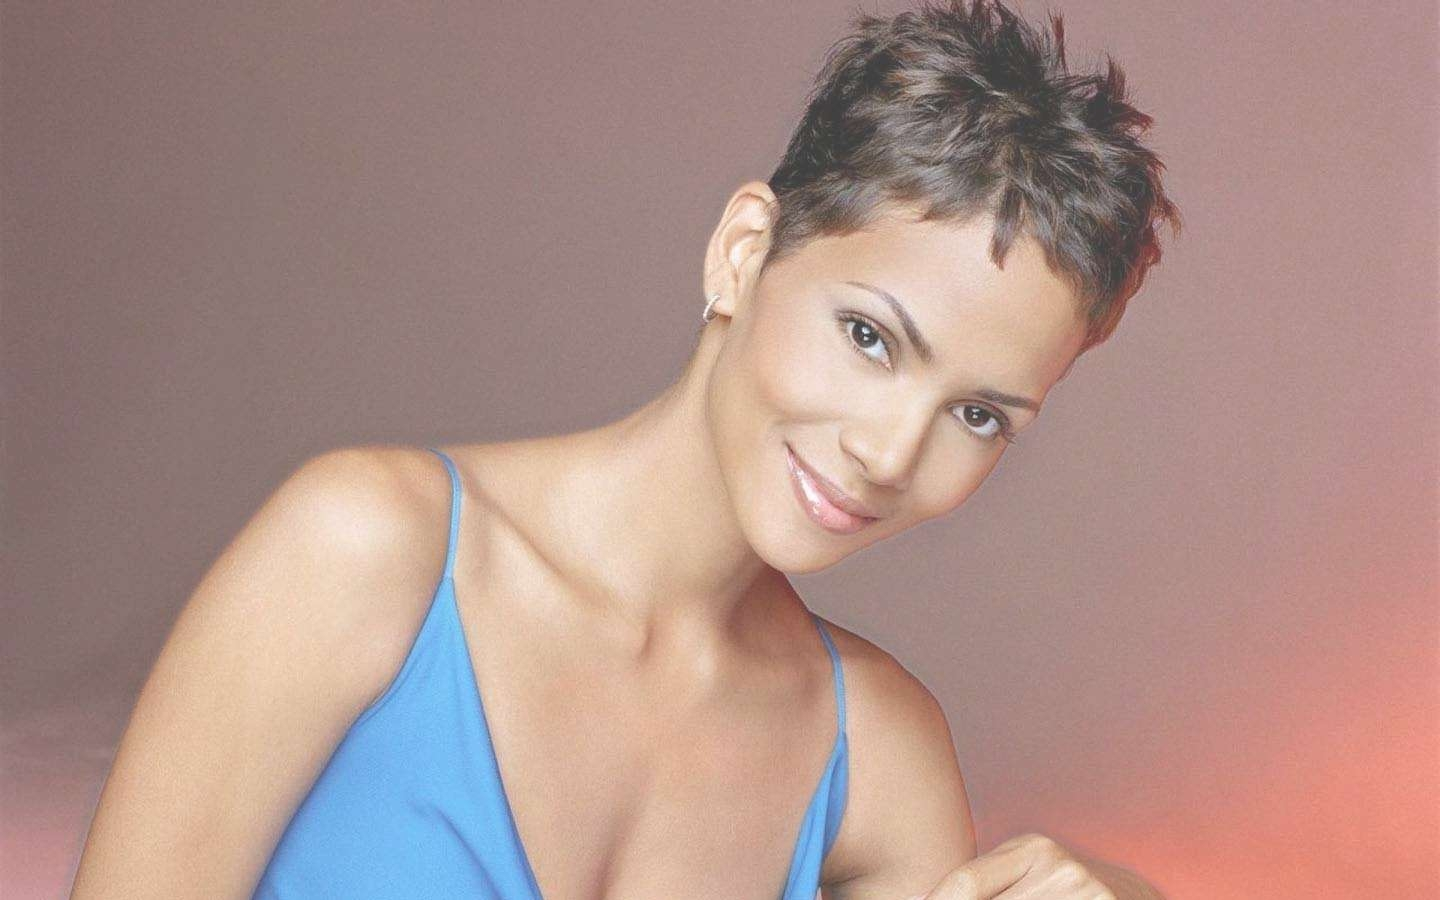 Short Pixie Hairstyles For Black Women Awesome Short Hairstyles Regarding Most Recent Black Women Short Pixie Hairstyles (View 6 of 15)